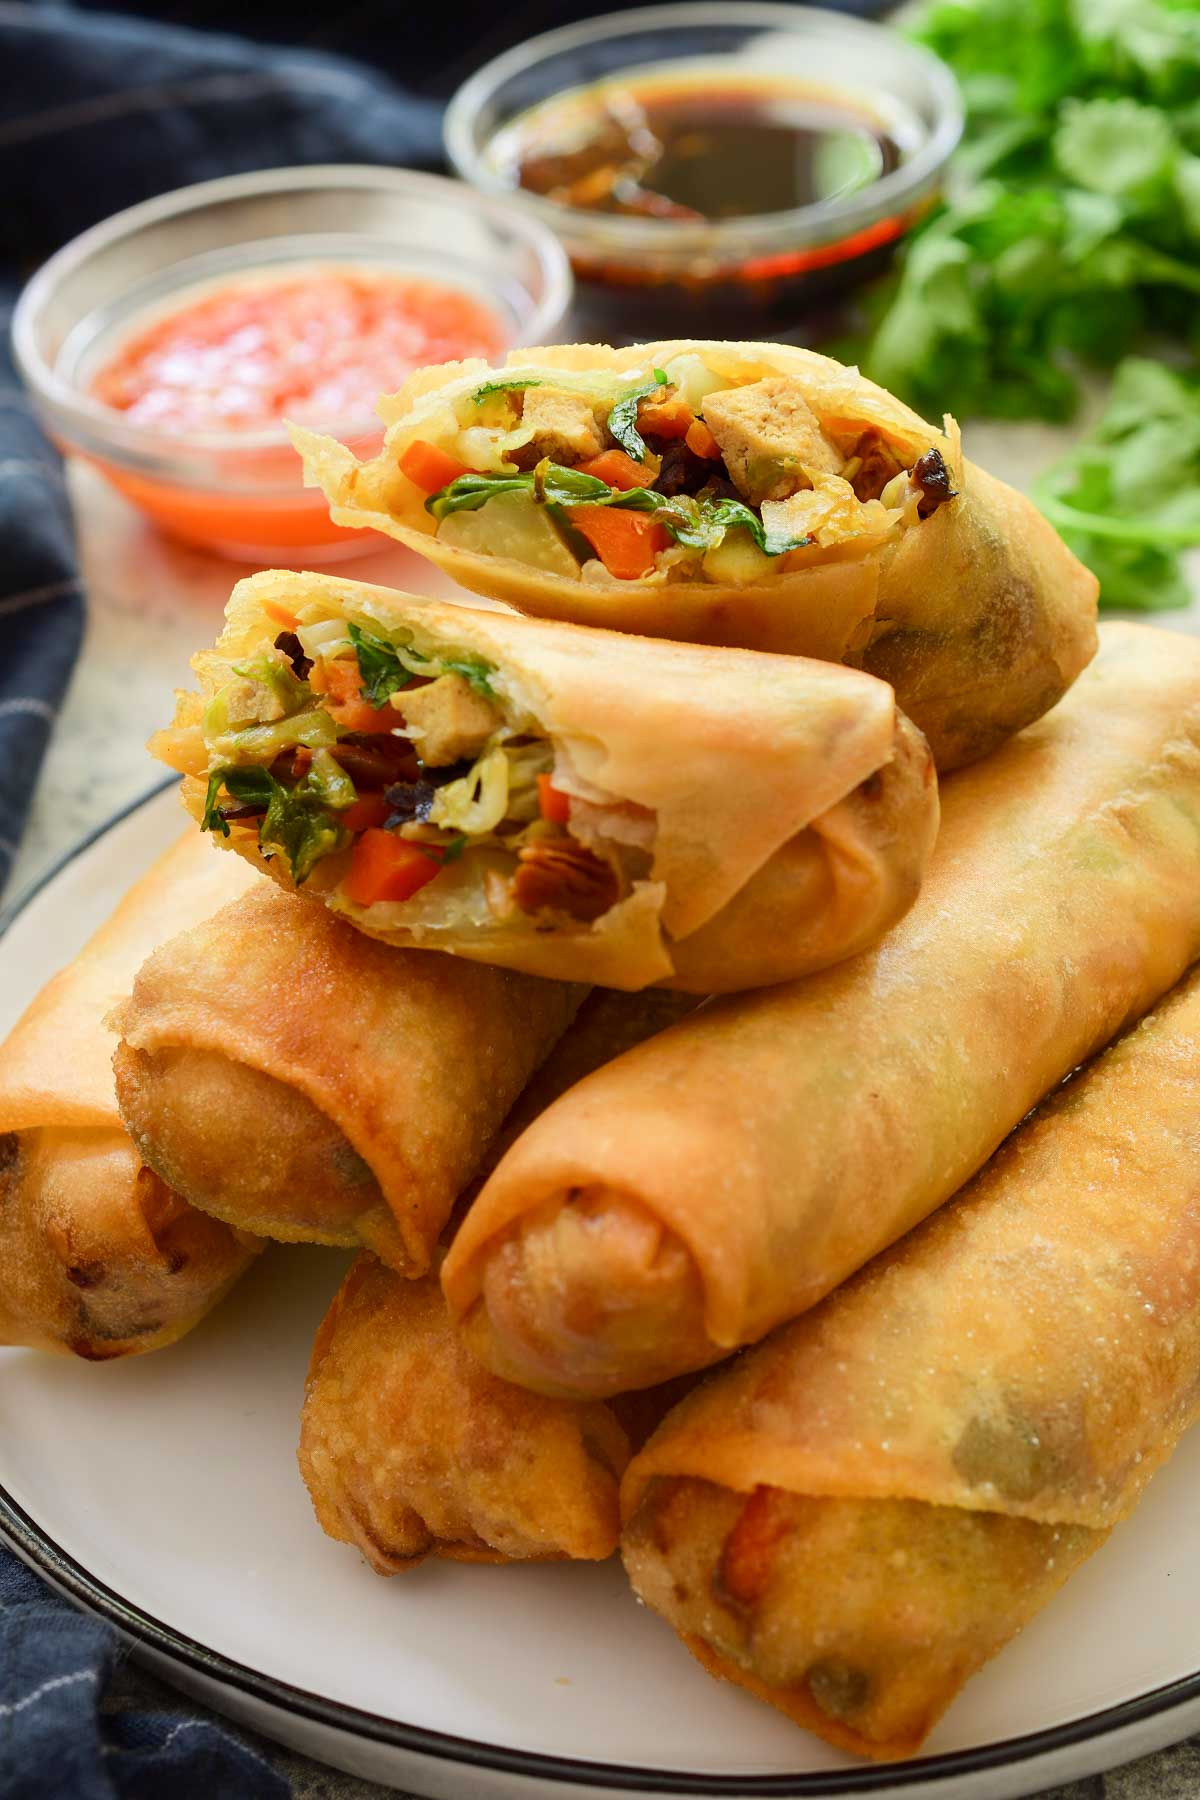 A pile of vegetable spring rolls with one cut open showing the filling. Two dipping sauces in the background.